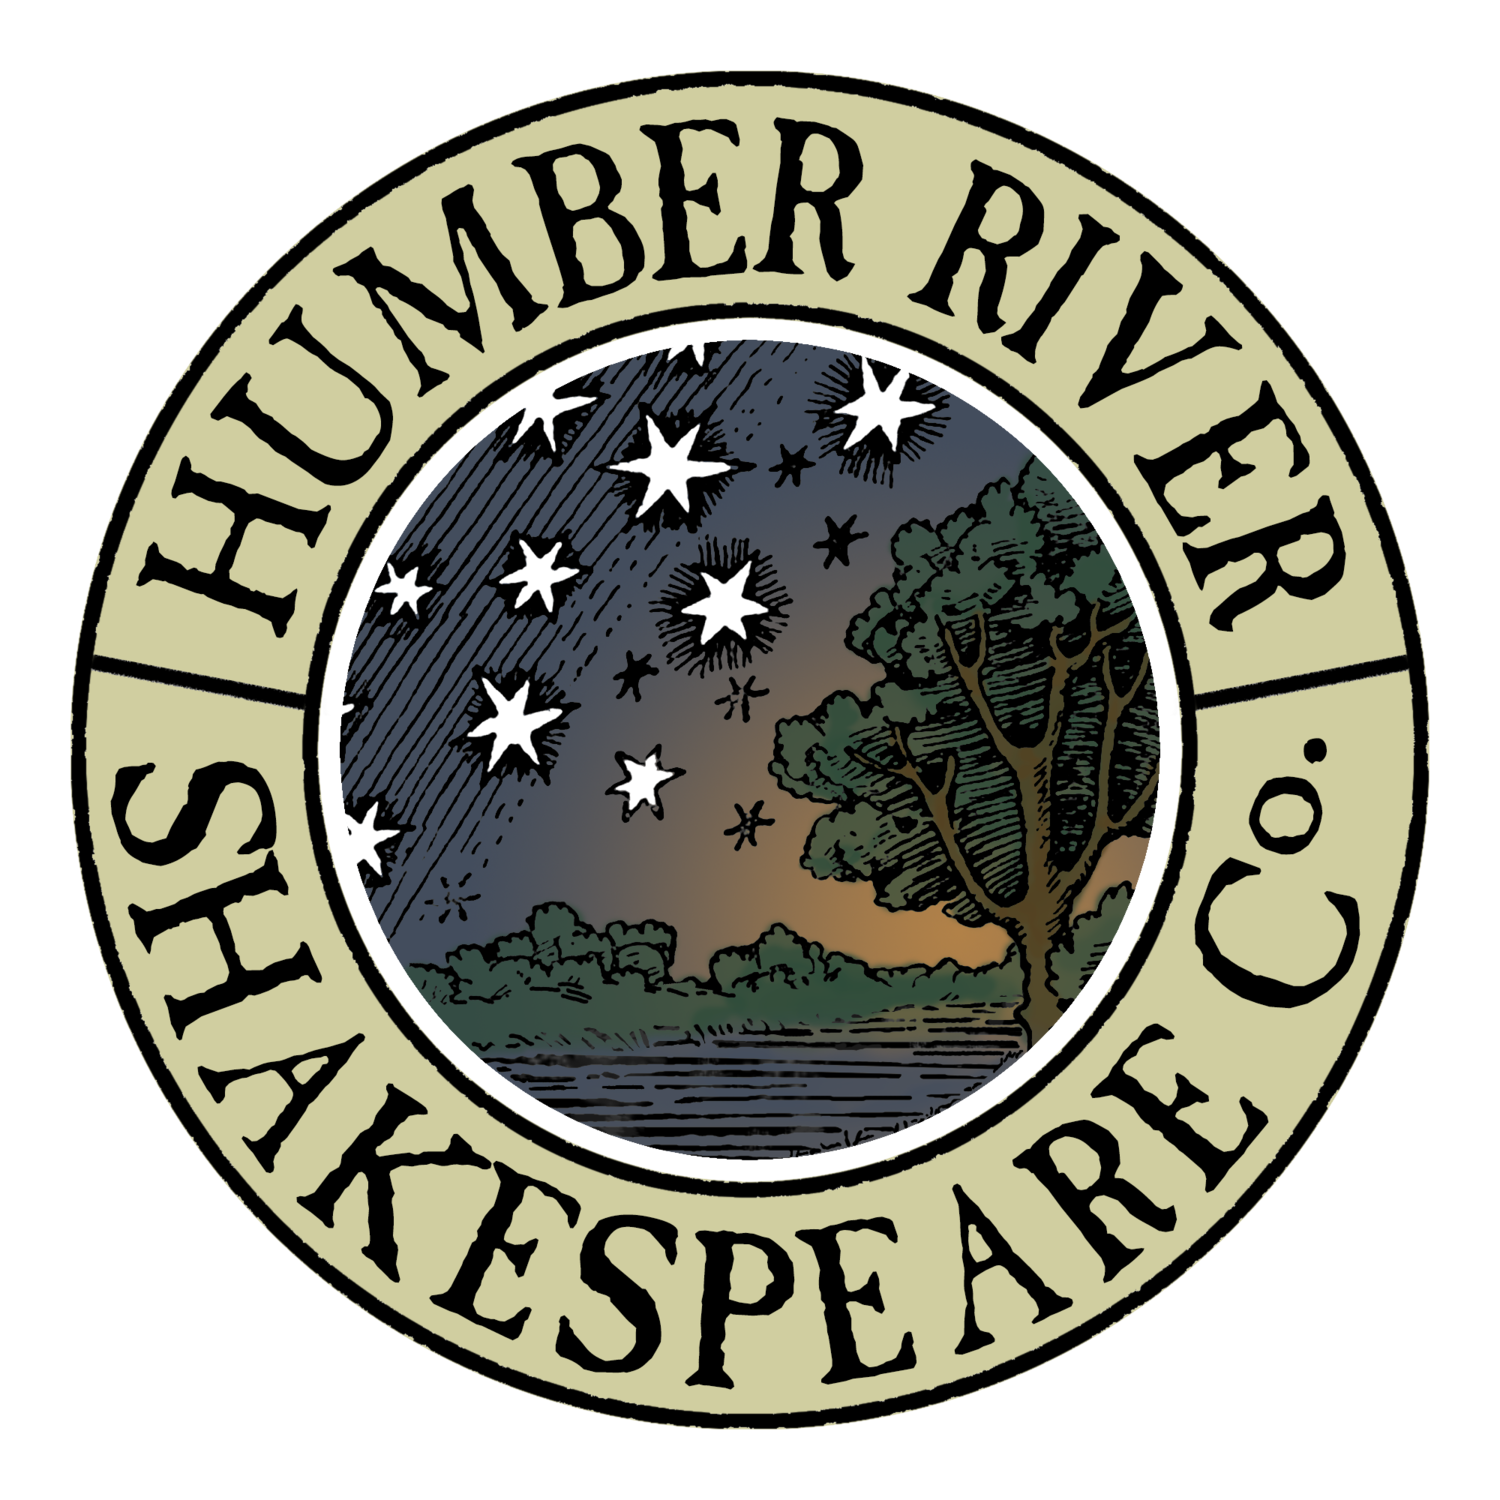 Humber River Shakespeare